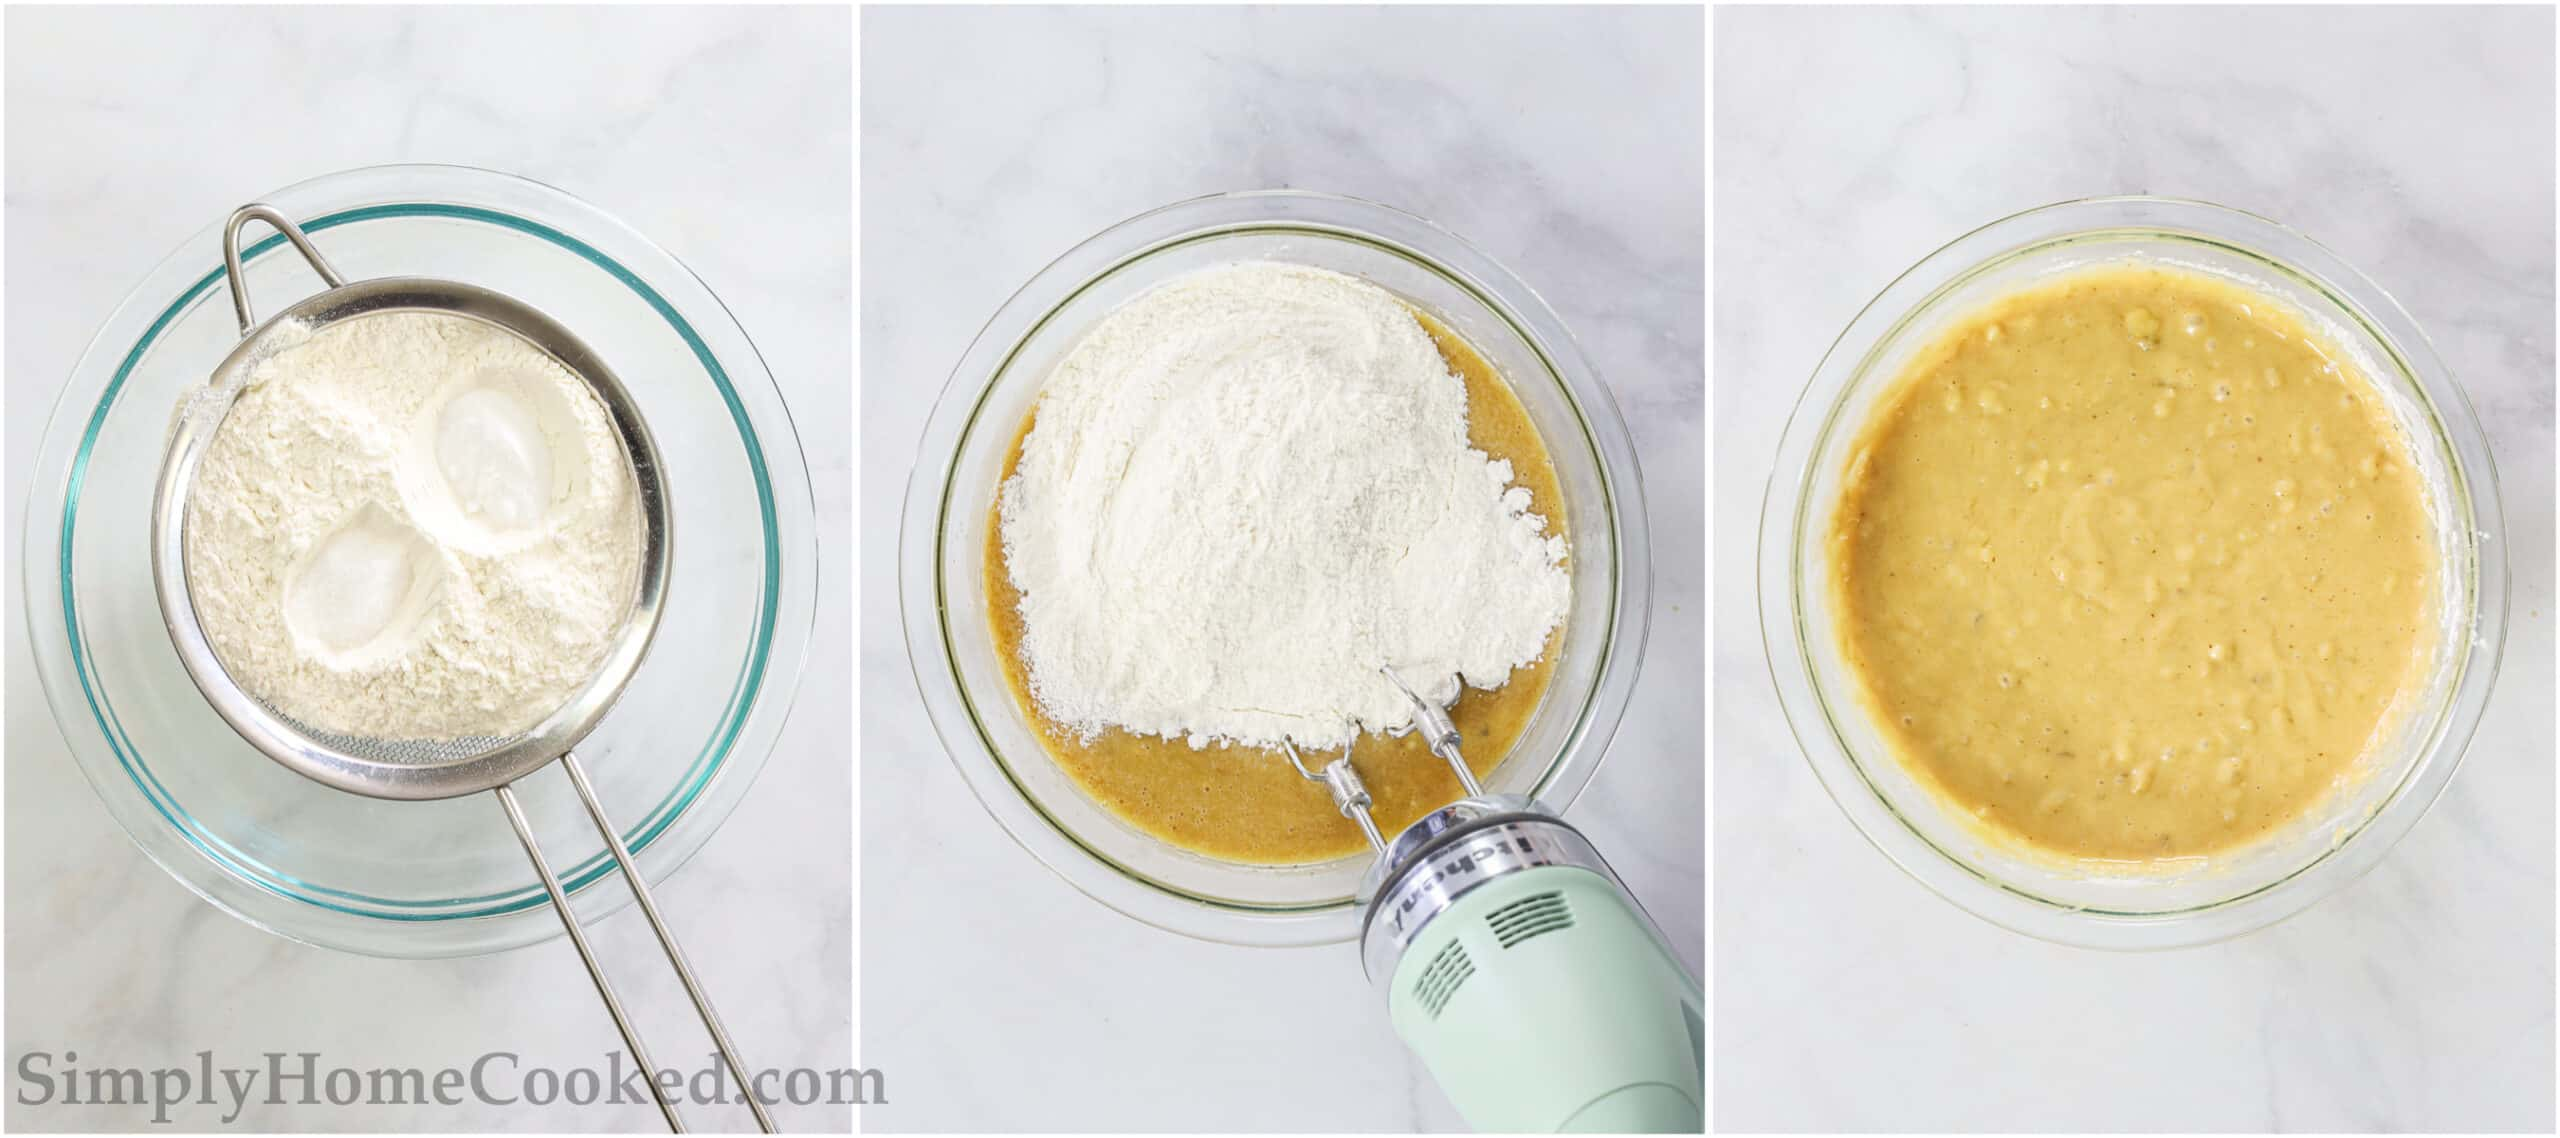 Steps to make Banana Chocolate Chip Muffins, including sifting the dry ingredients into the batter and mixing with a hand mixer.